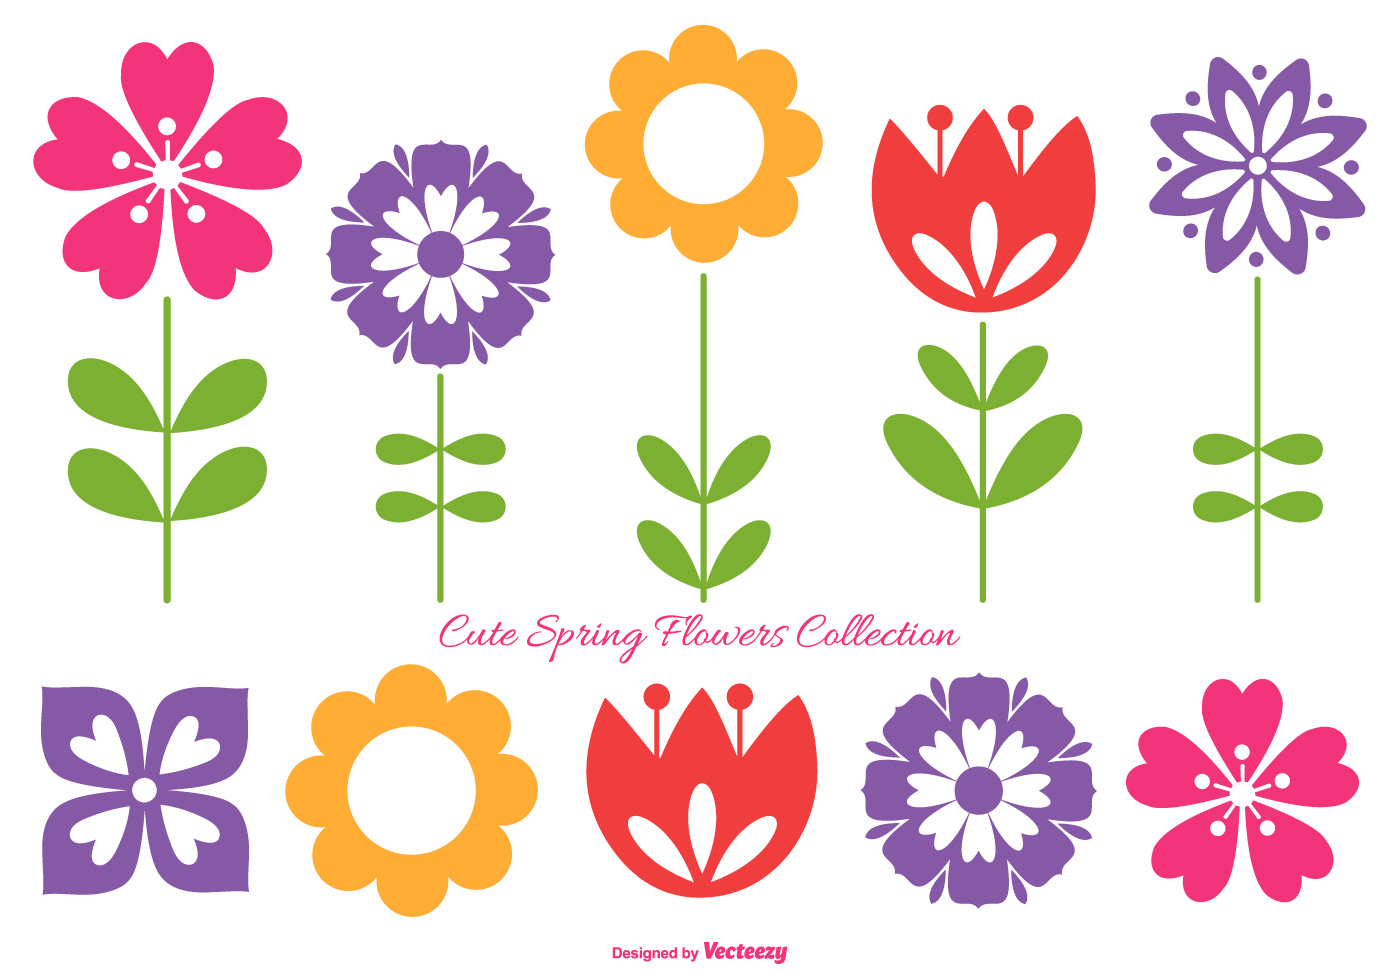 Cute Spring Flowers Collection Download Free Vector Art Stock